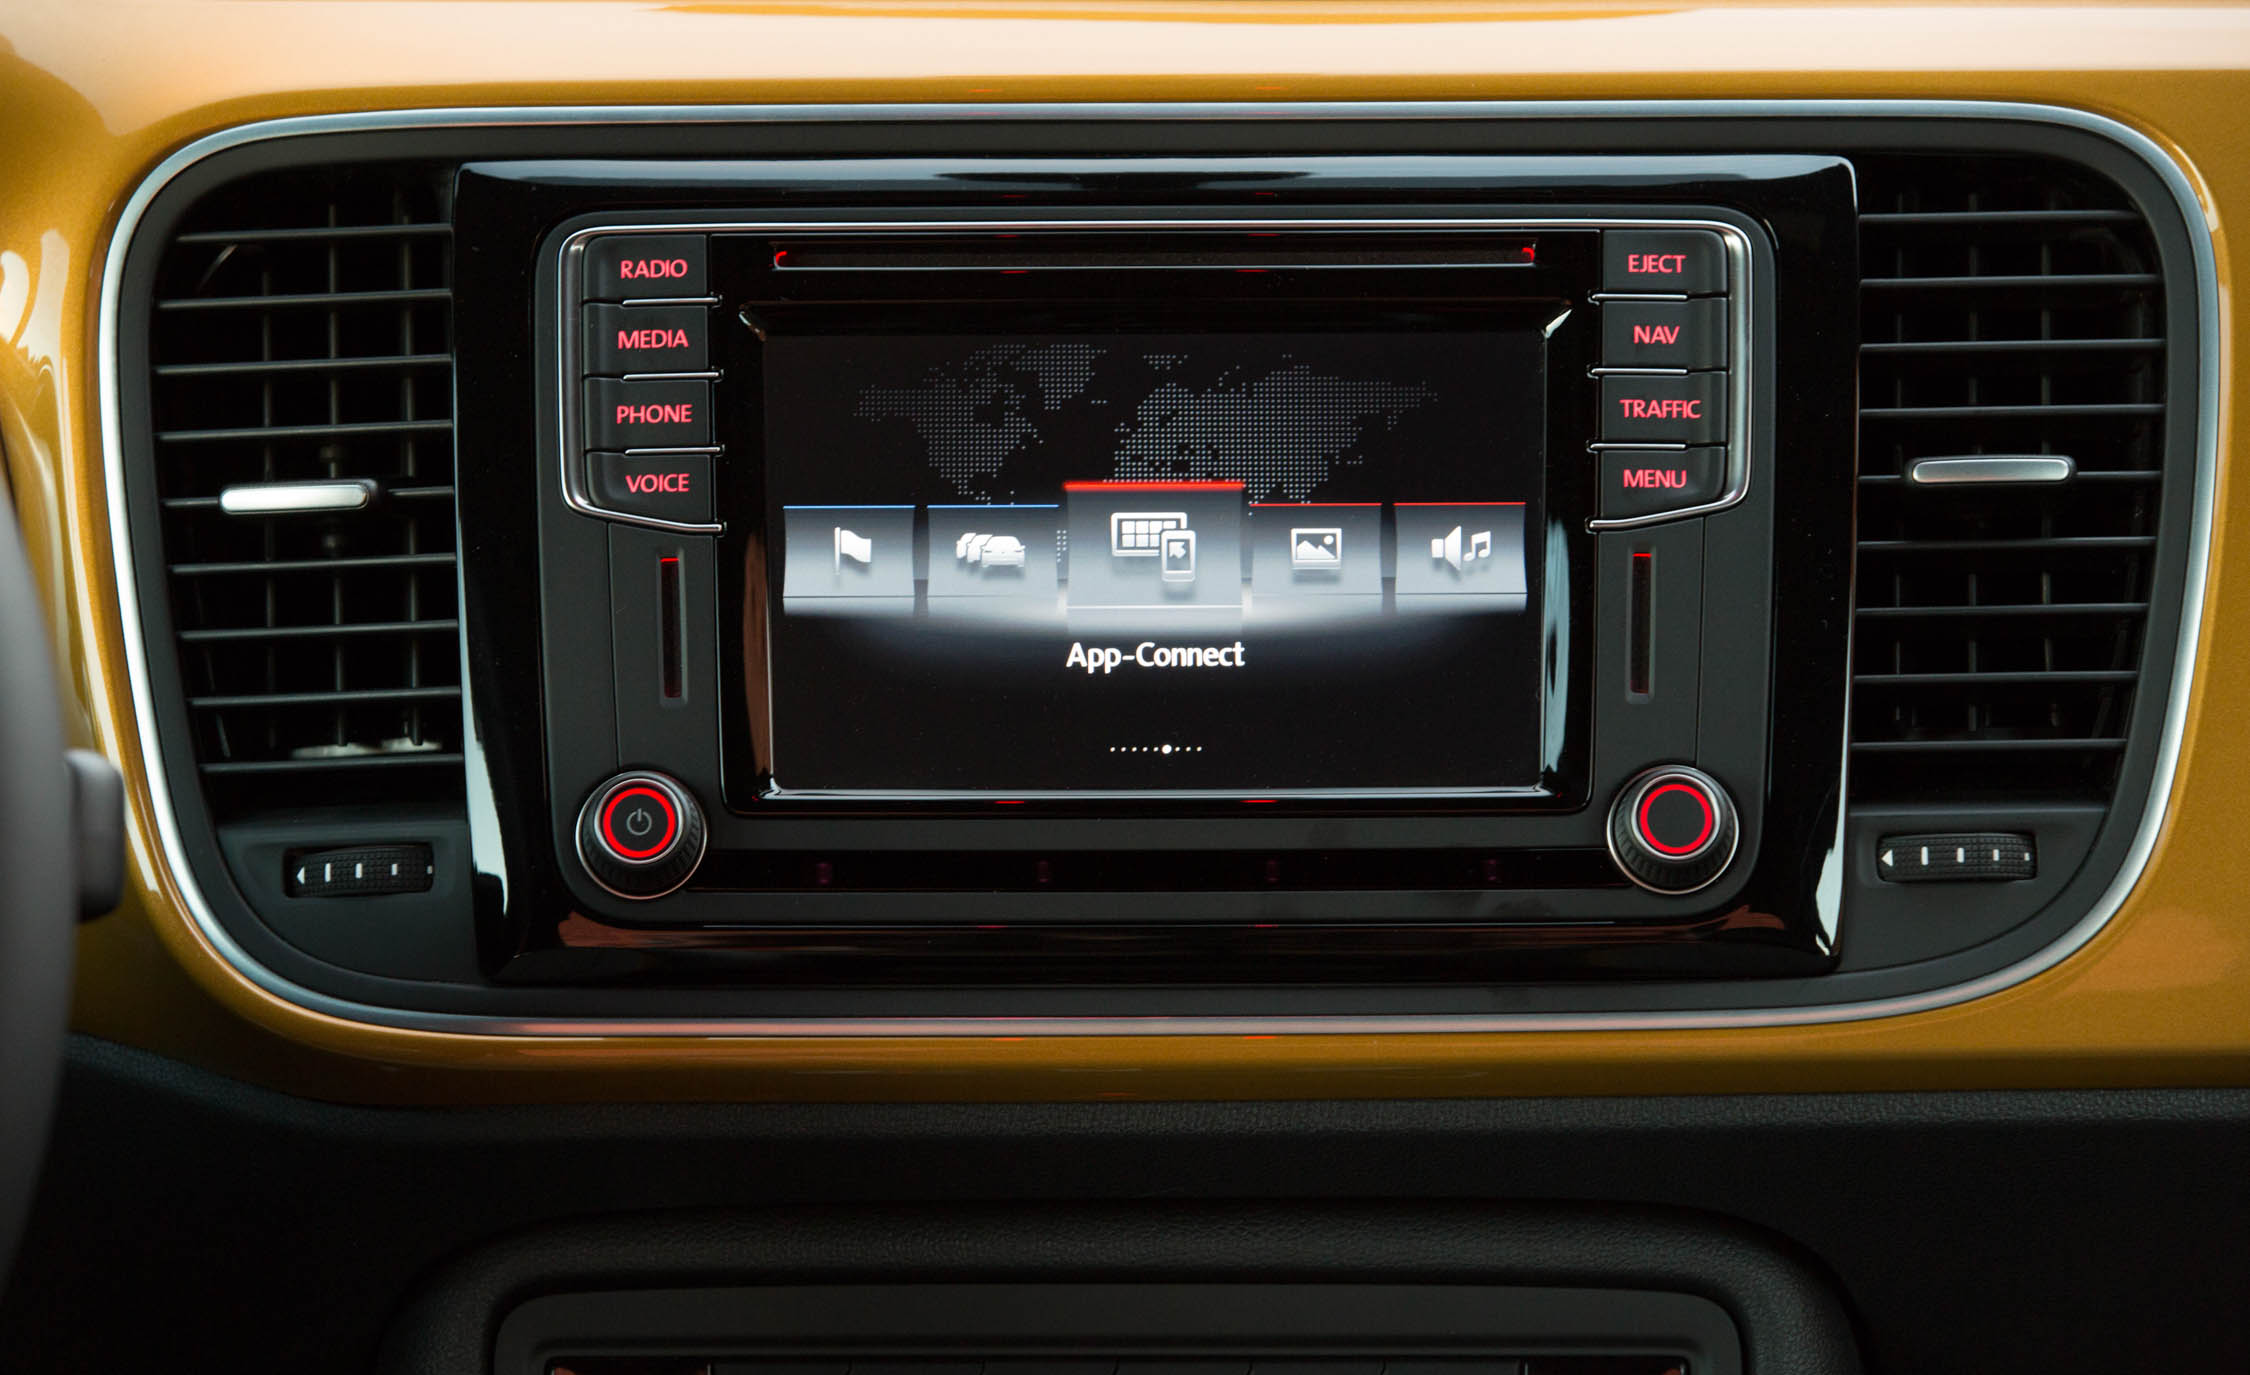 2016 Volkswagen Beetle Dune Interior Center Head Unit (Photo 24 of 32)